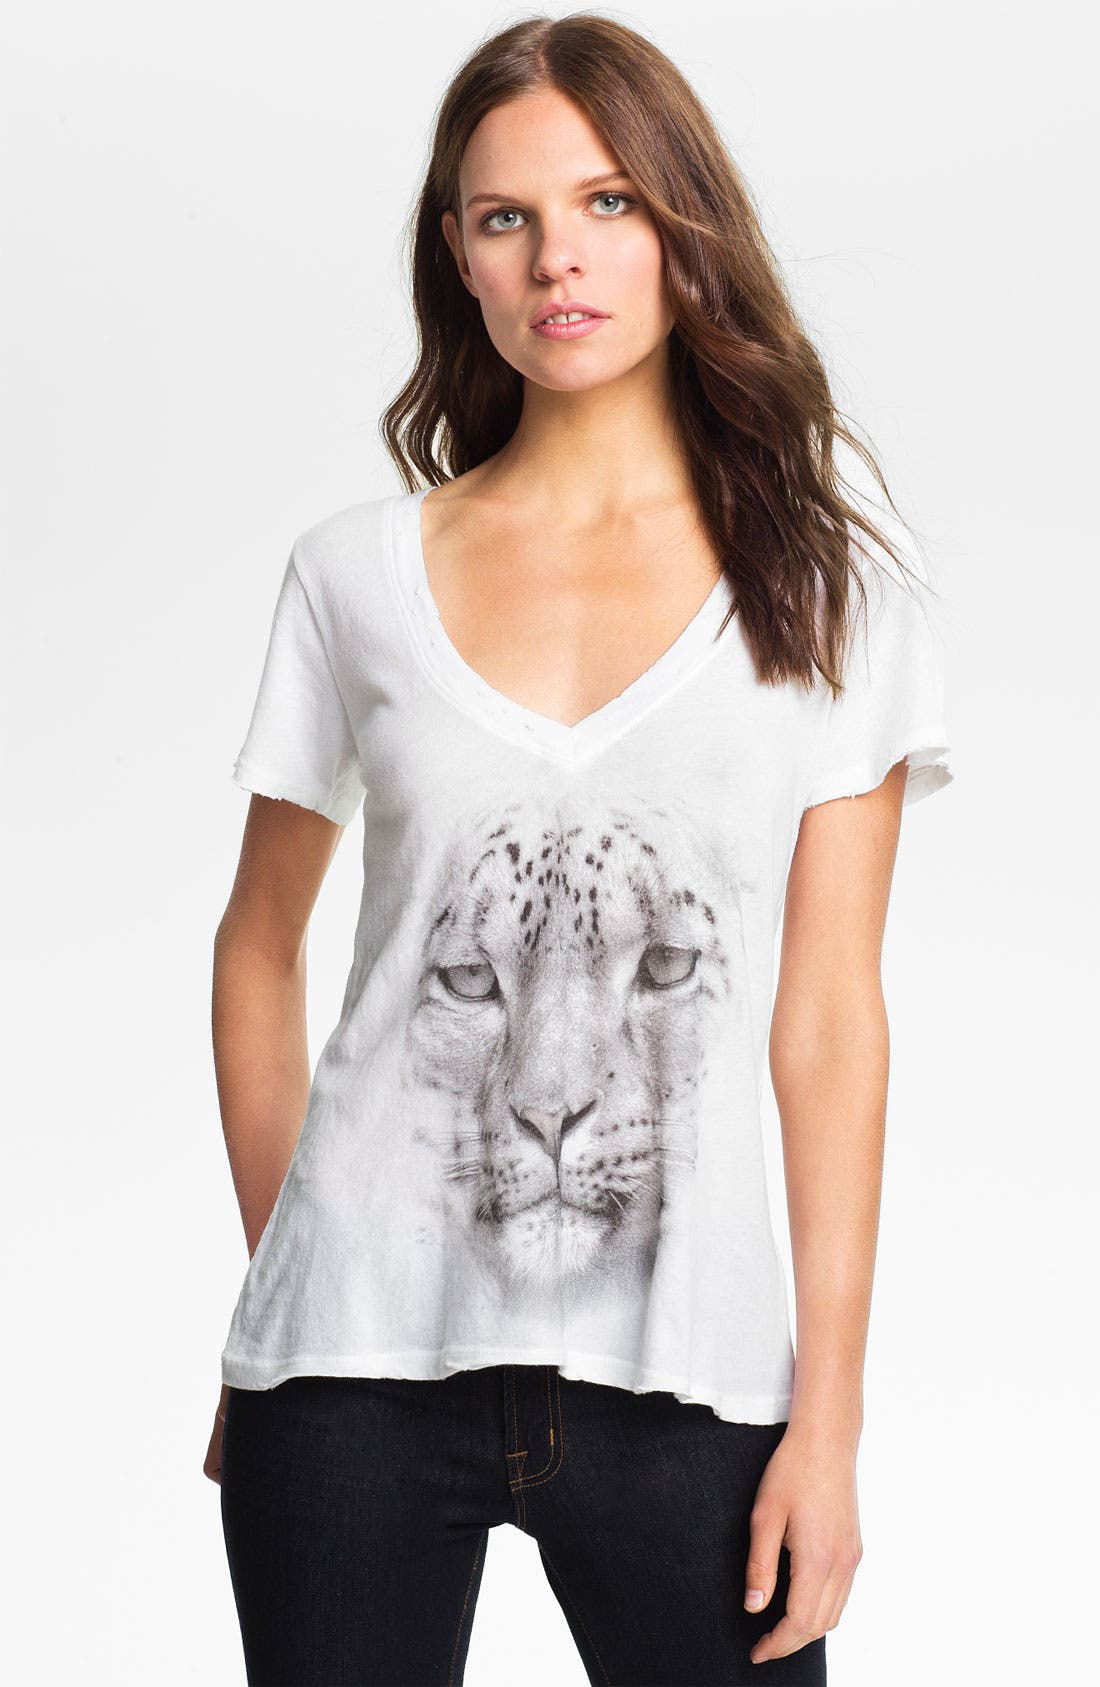 Alternate Image 1 Selected - Wildfox 'Snow Leopard' Graphic Tee